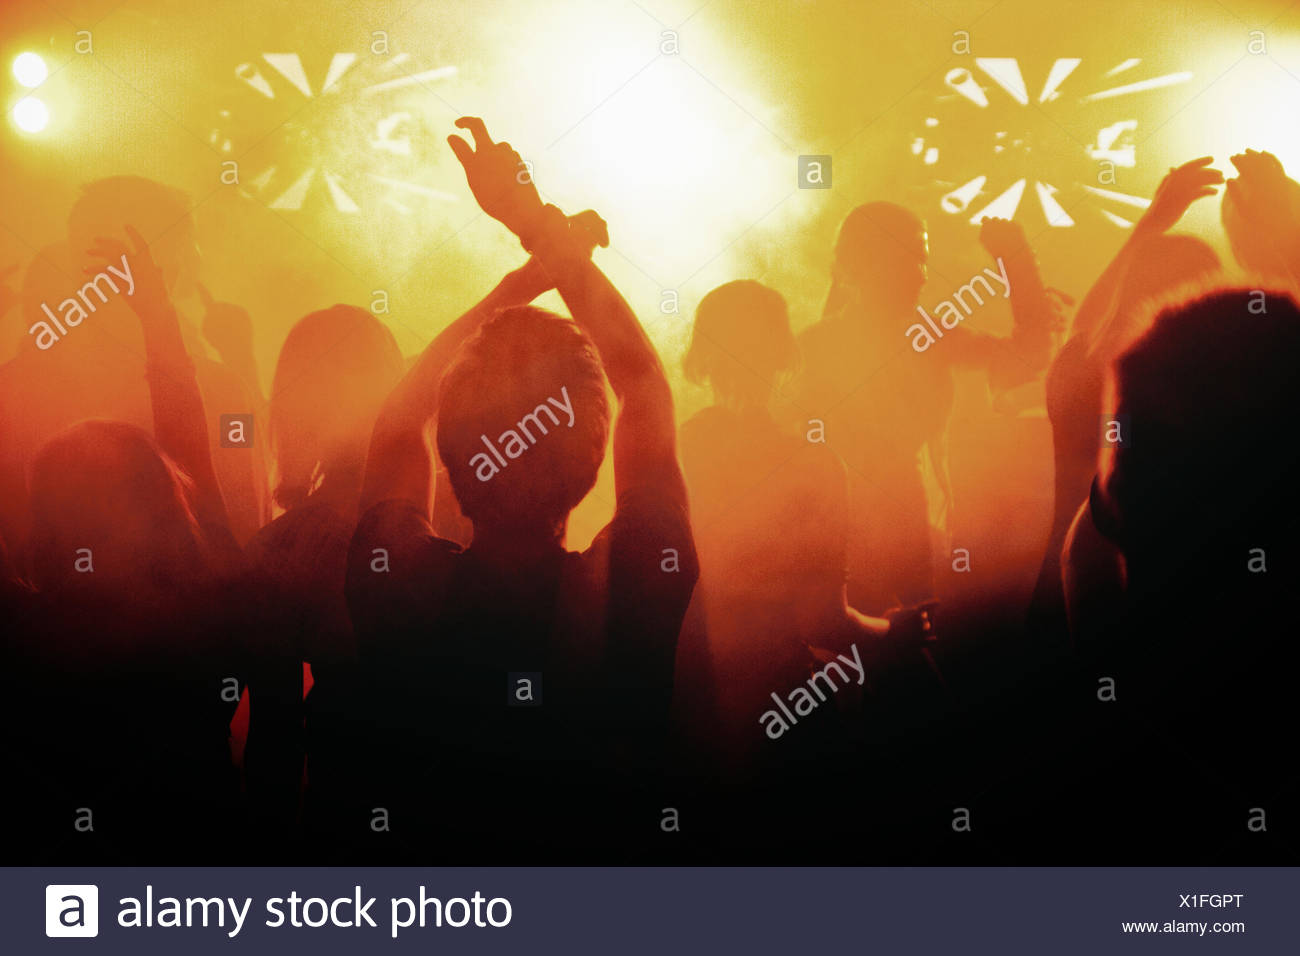 Finland, Silhouettes of people dancing at concert - Stock Image